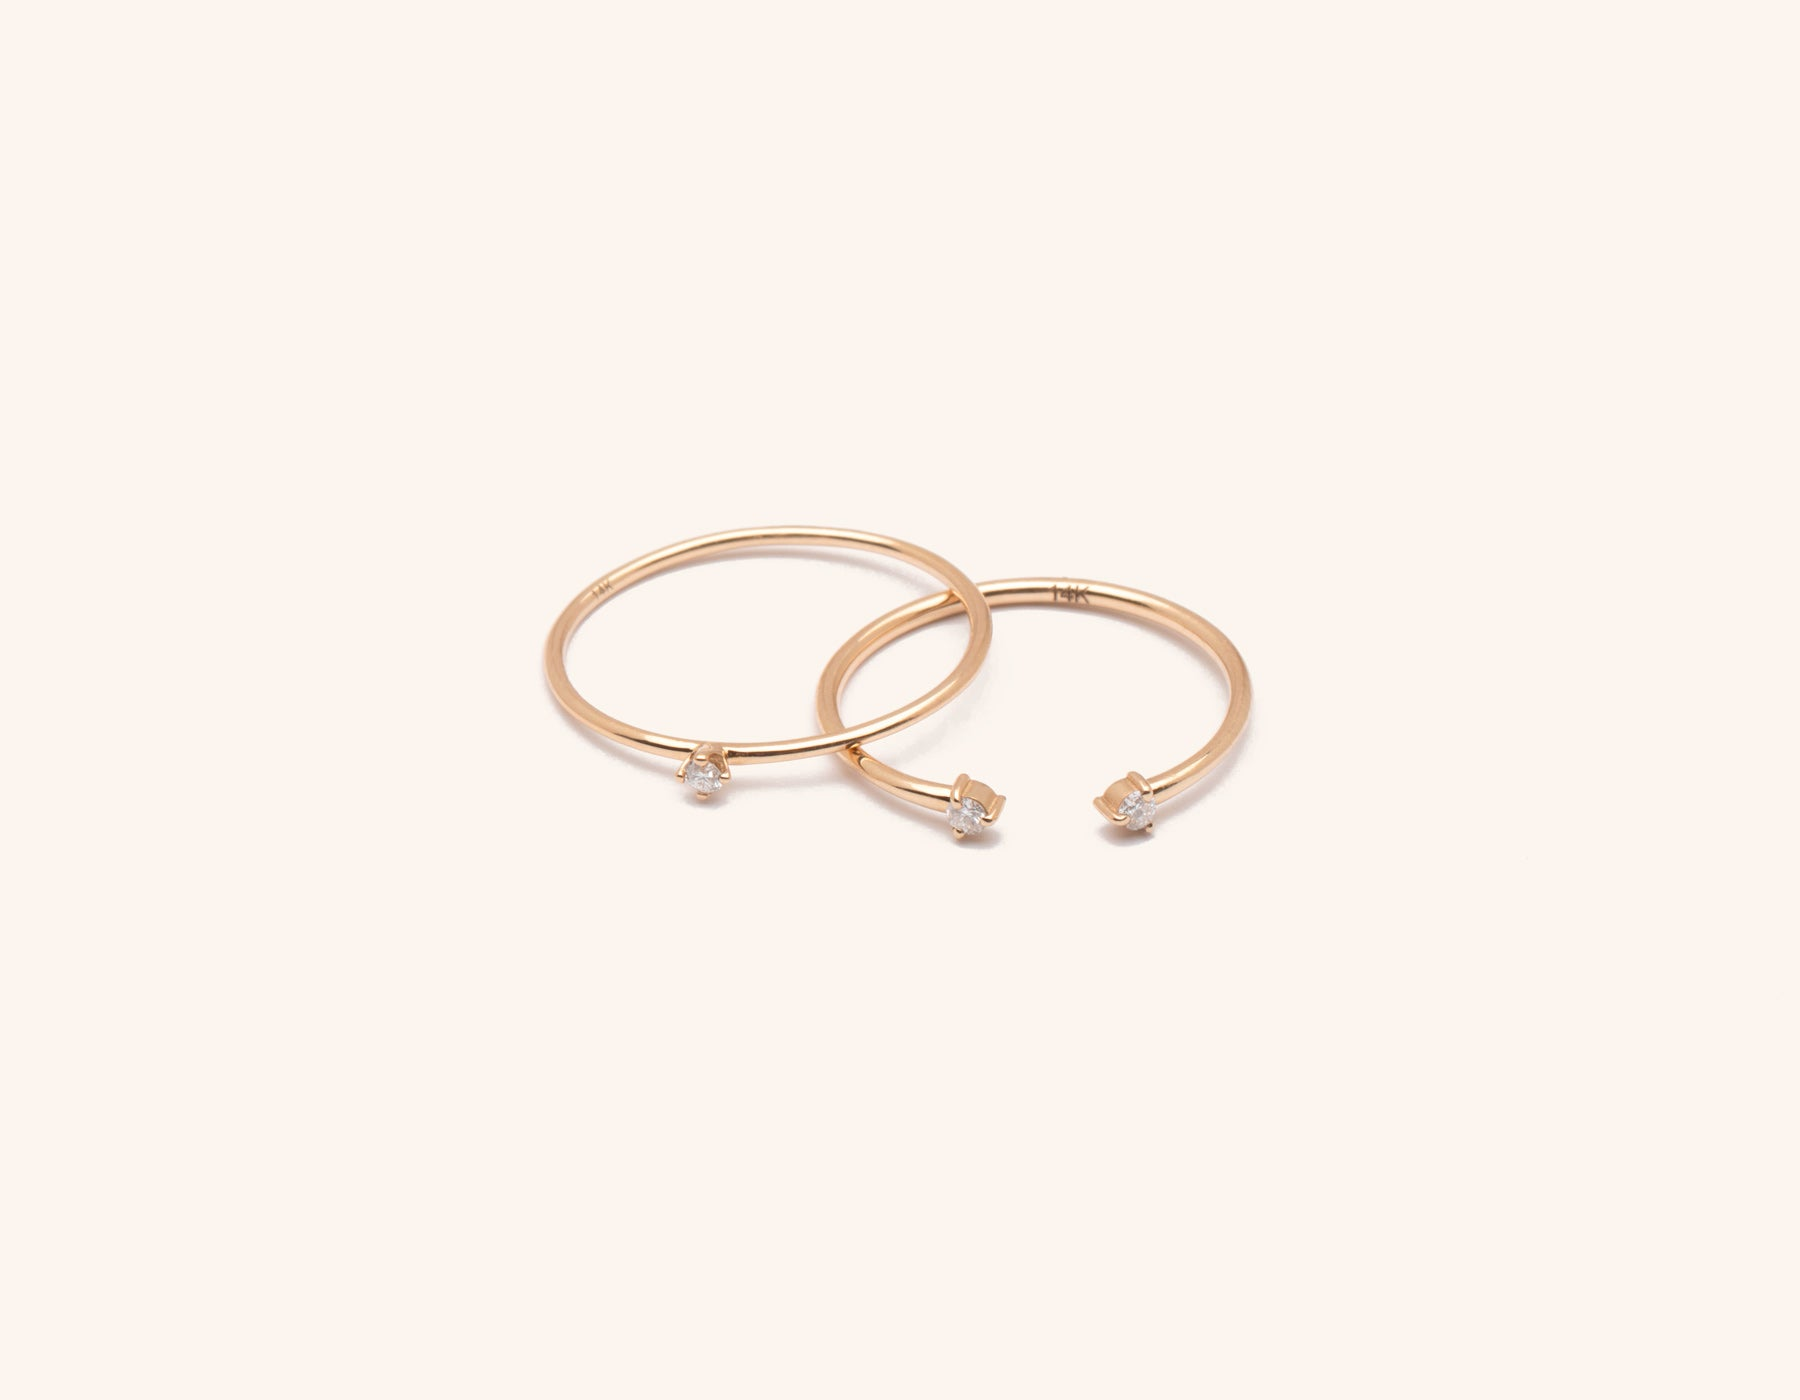 Solid 14K gold Constellation Stack diamond ring bundle by Vrai & Oro minimalist classic sustainable jewelry, 14K Rose Gold